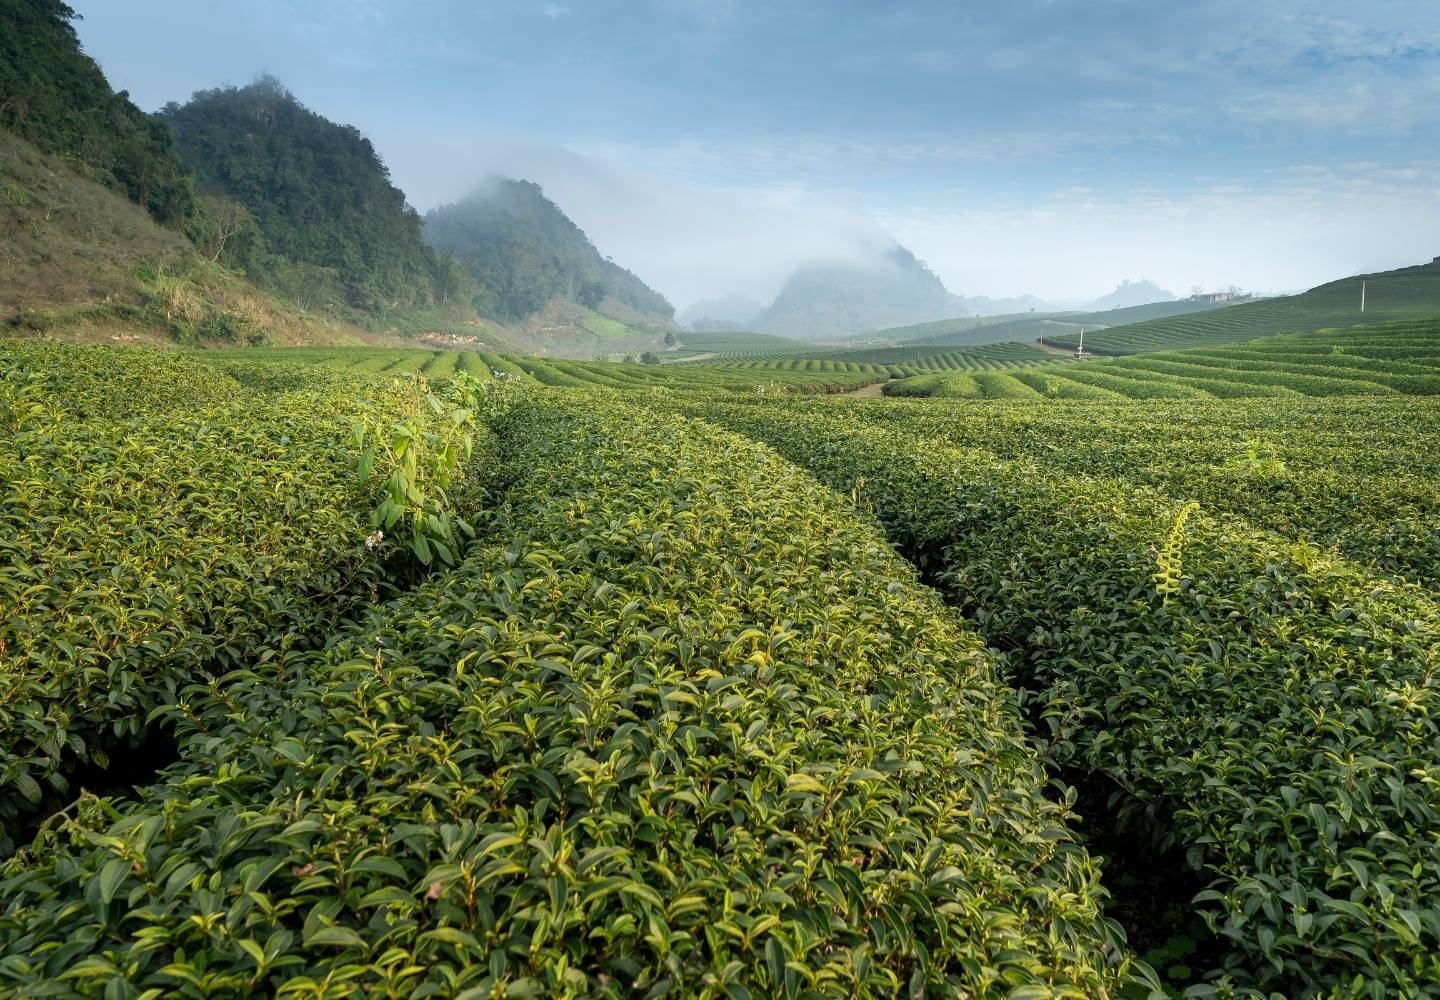 A tea field in China. Thick rows of tea bushes are in the foreground, with misty mountains in the background.